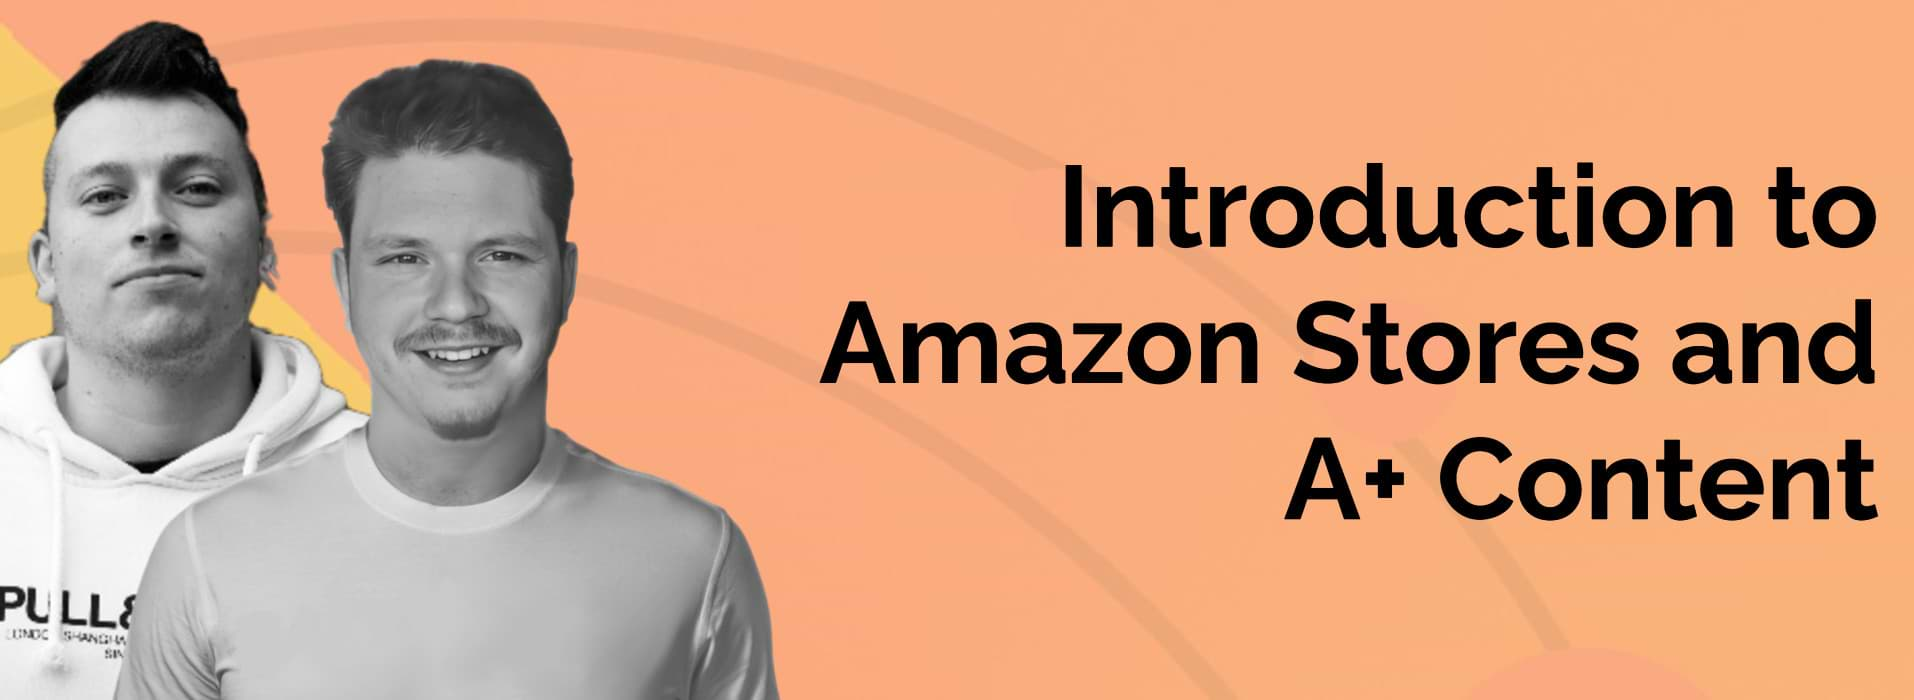 Introduction to Amazon Stores and A+ Content